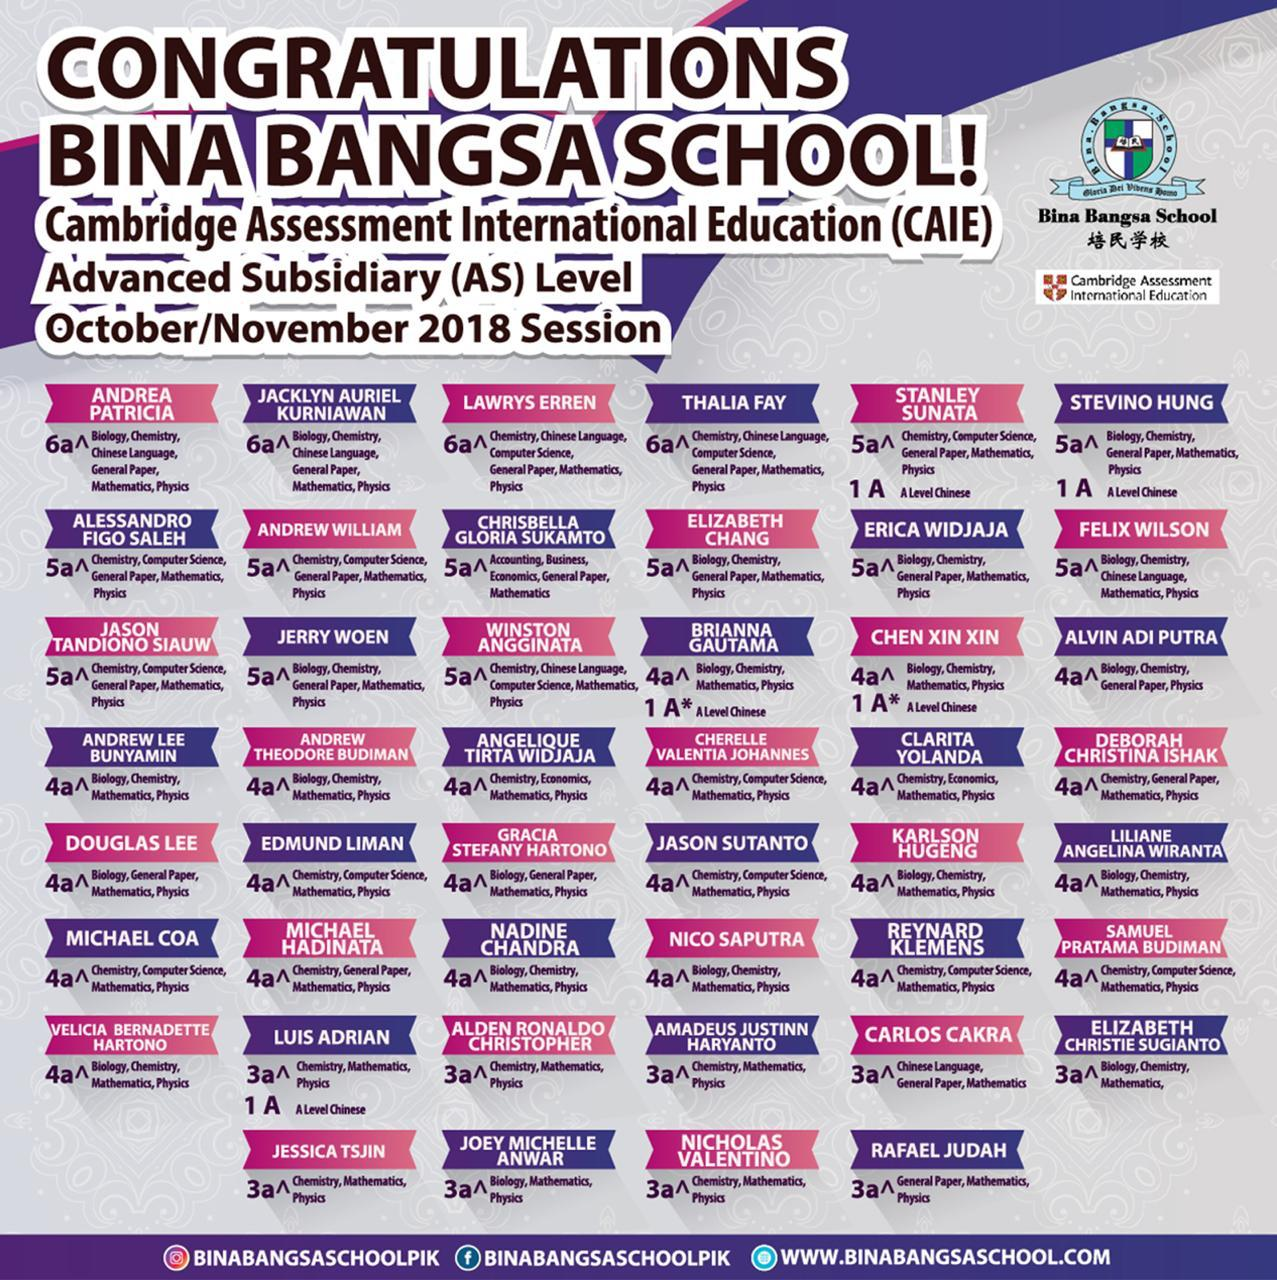 Cambridge Assessment International Education (CAIE) 2018